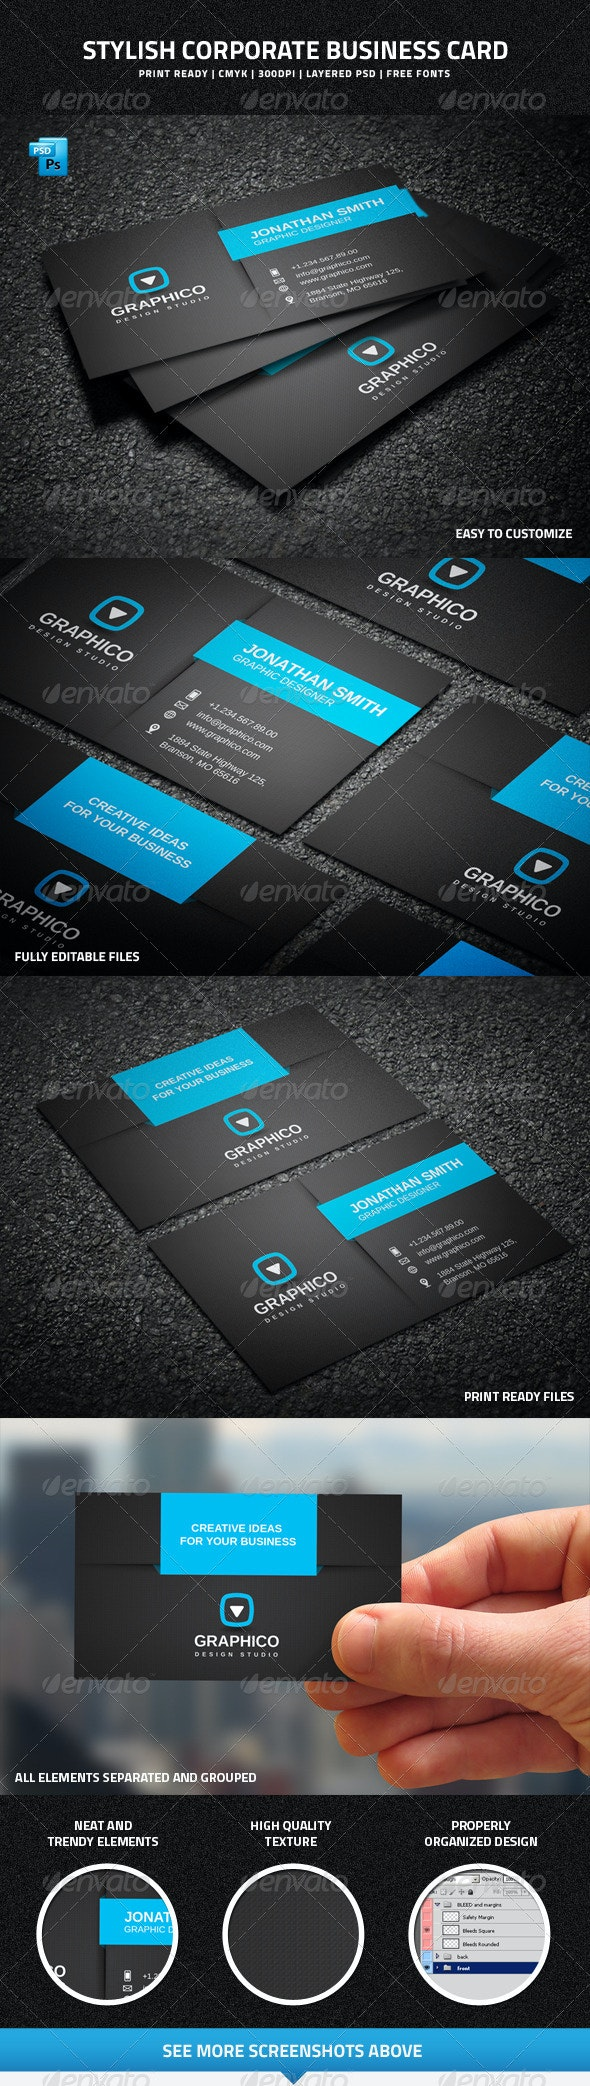 Stylish Corporate Business Card - 35 - Creative Business Cards